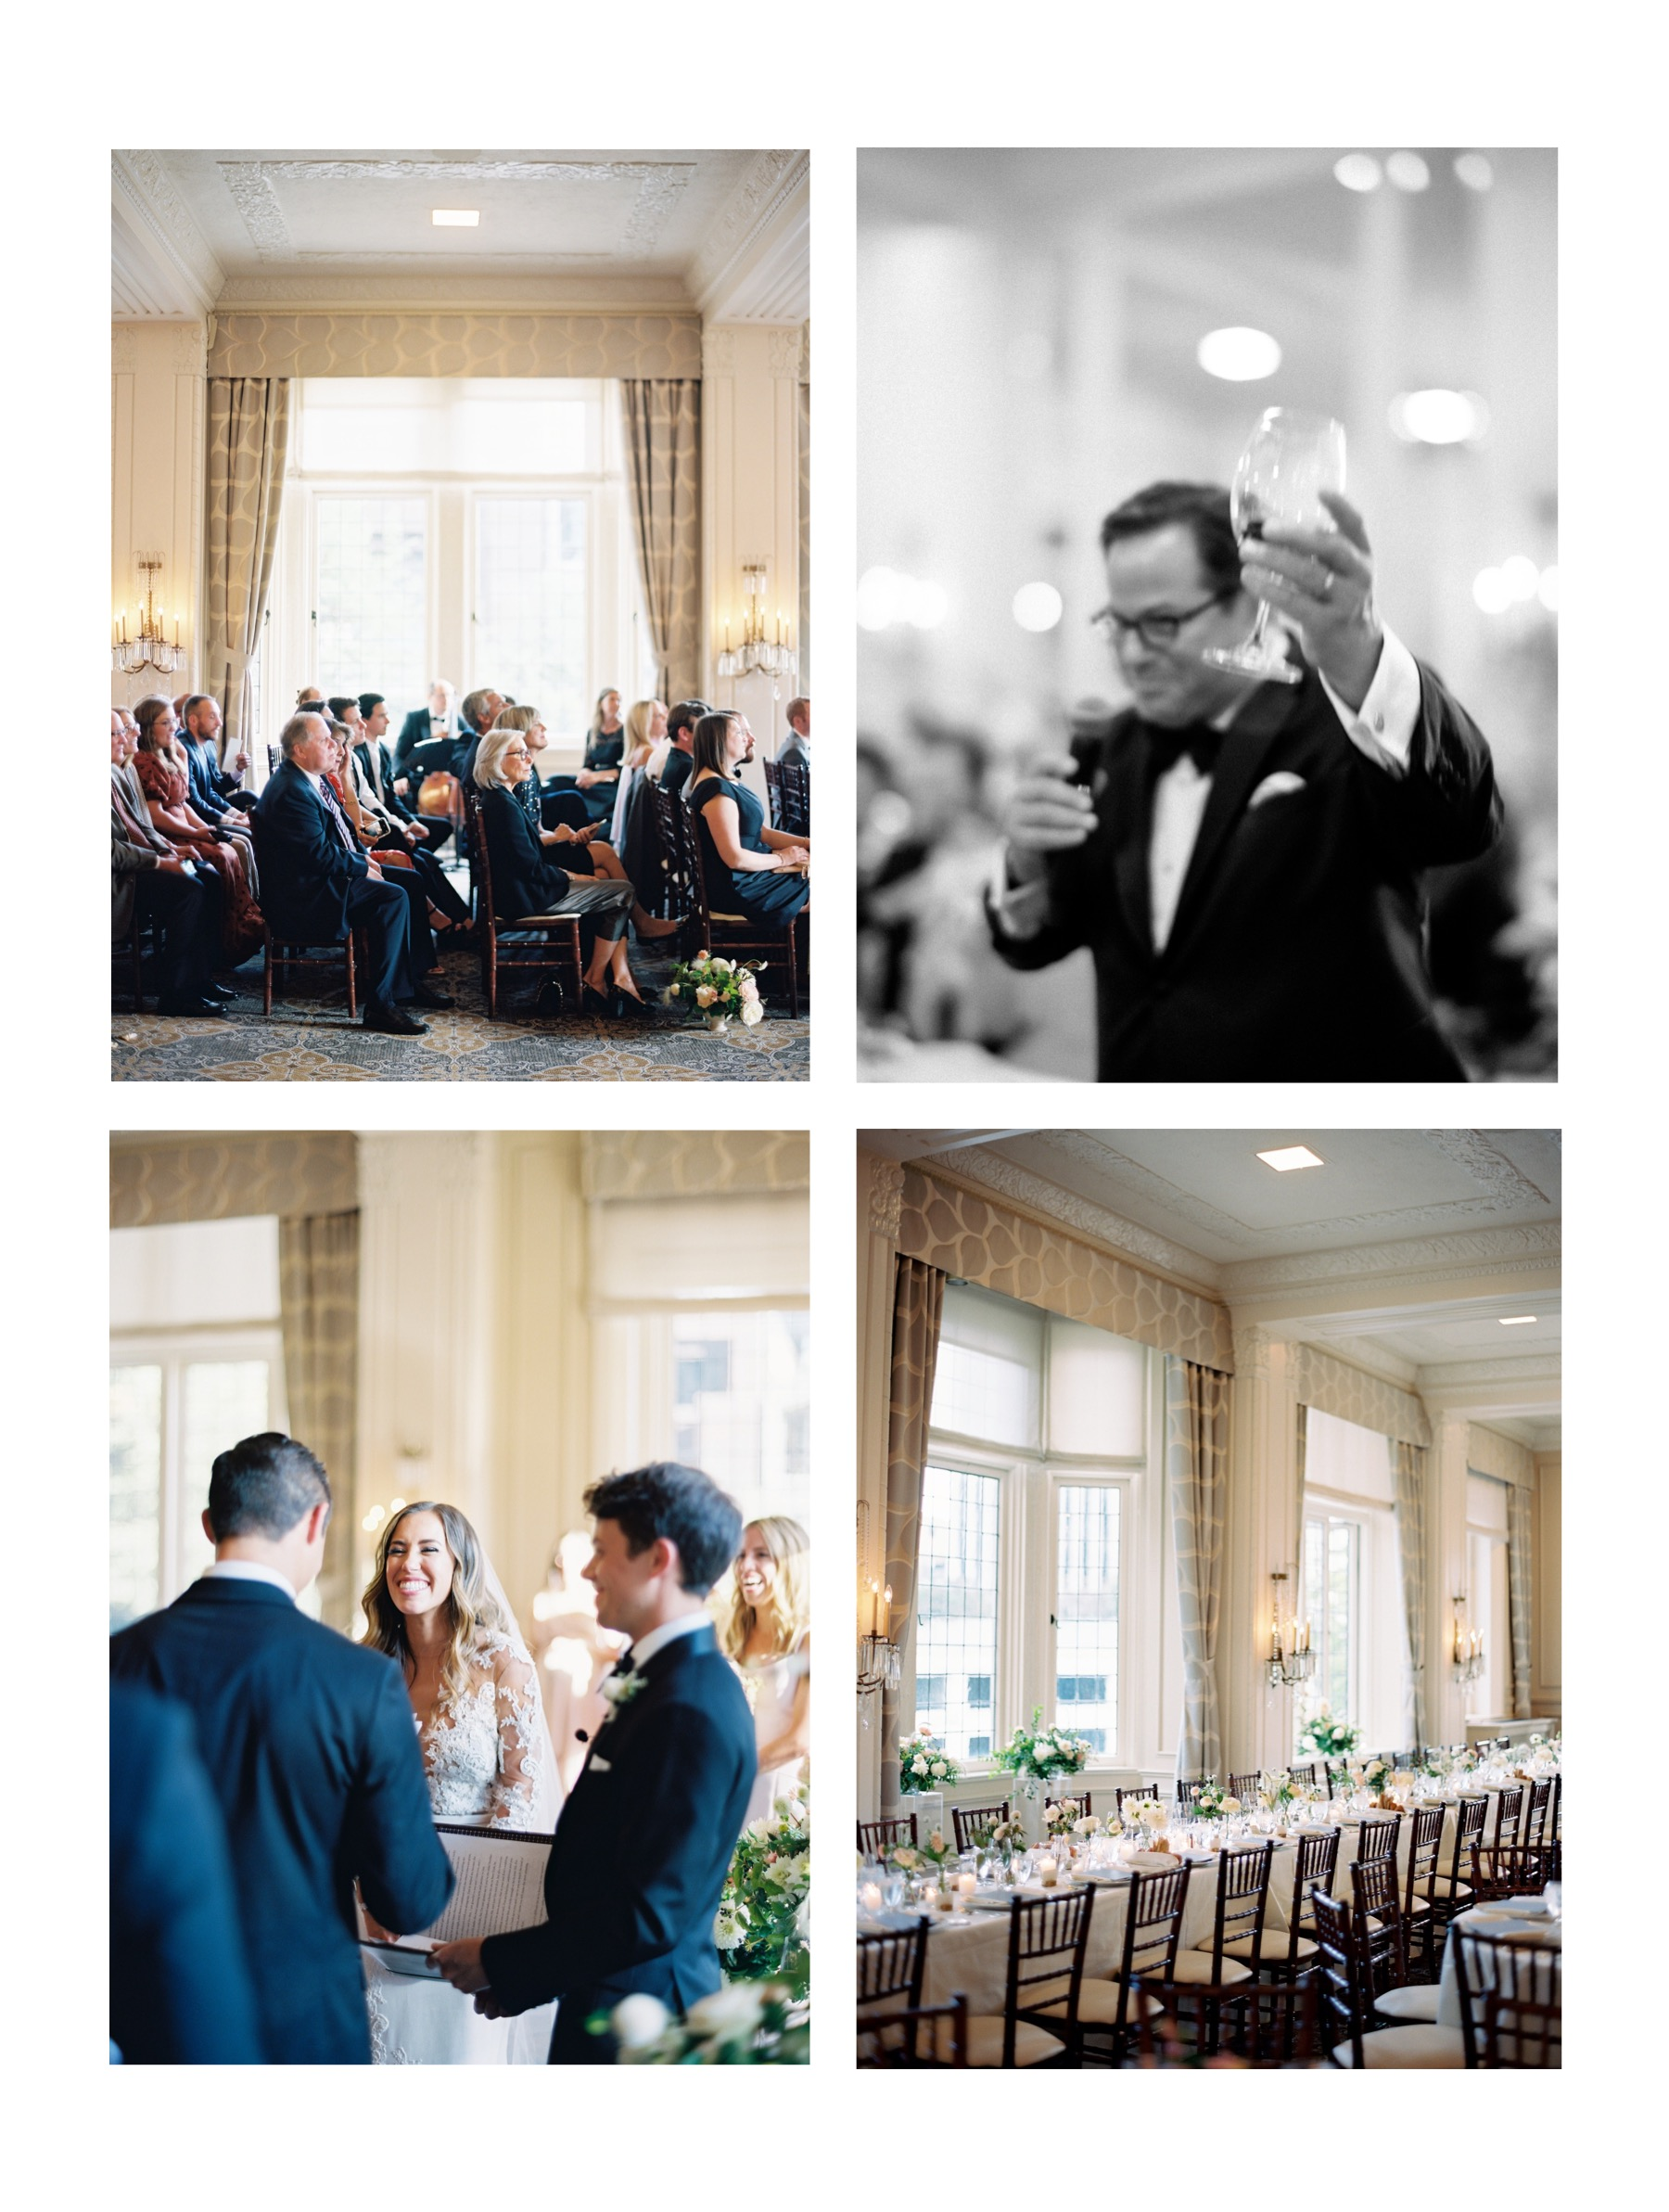 Our favorite elegant Seattle Wedding Venues, and a photographer's perspective on setting | The Rainier Club, classic indoor Seattle Wedding venue in downtown